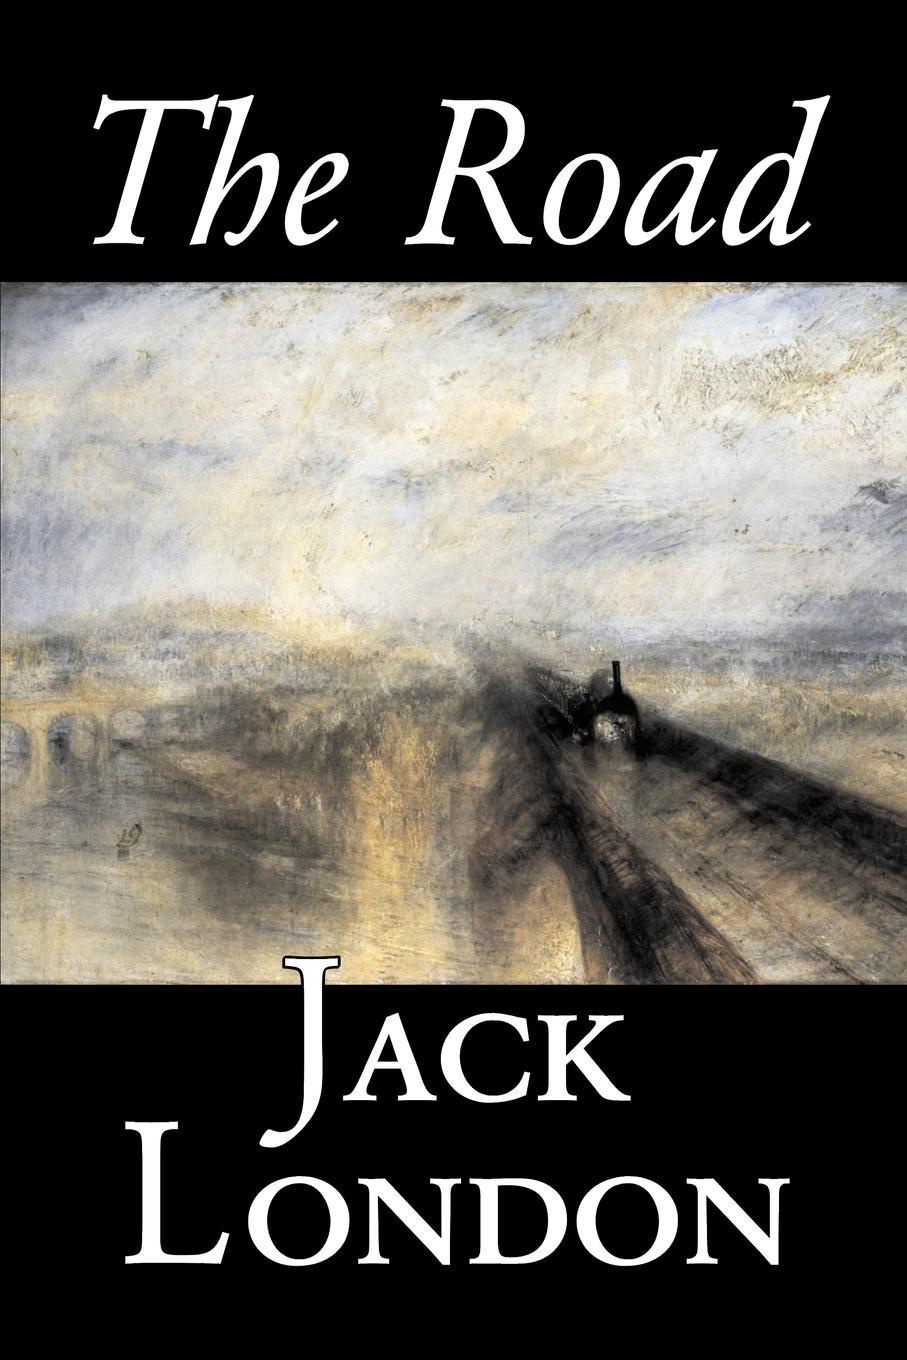 Фото - Jack London The Road by Jack London, Fiction, Action & Adventure london j the road